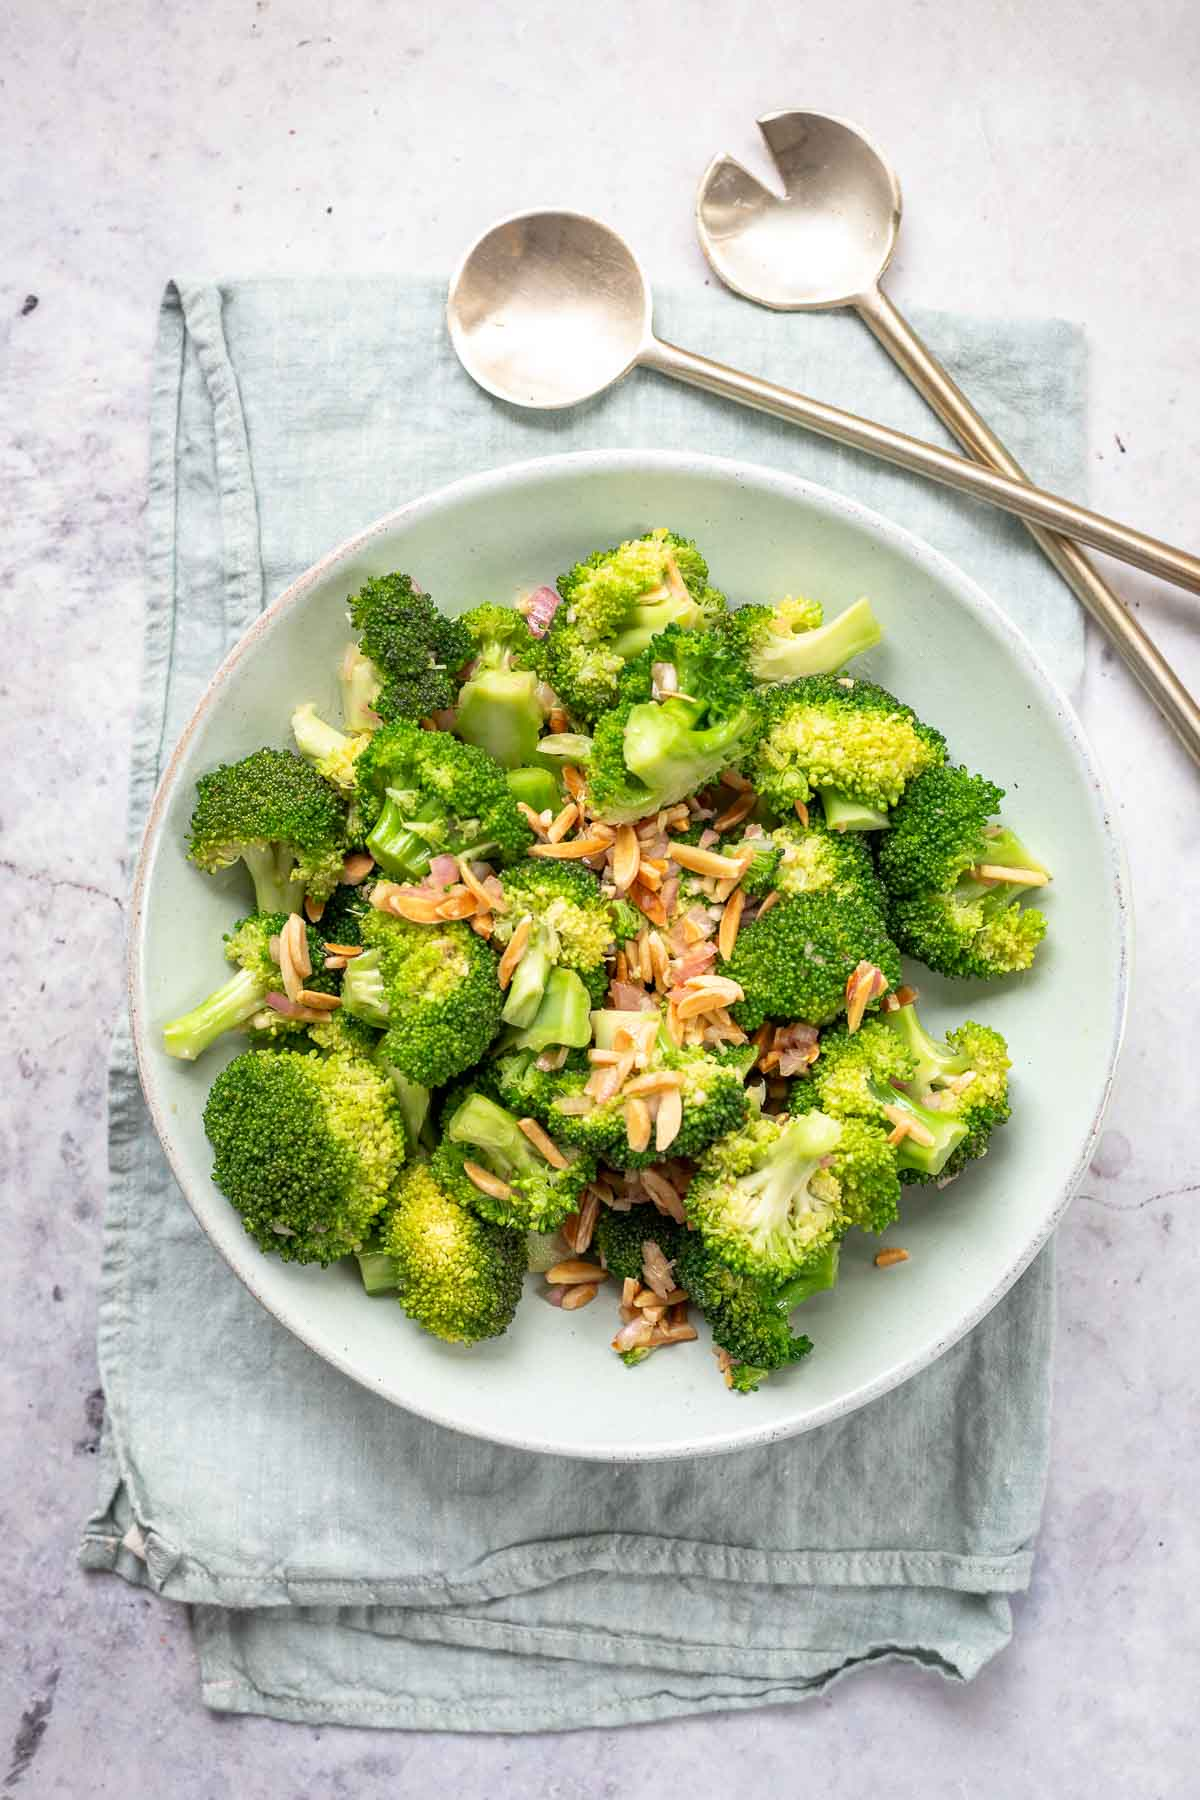 Asian-Style Broccoli Salad with miso paste and almonds